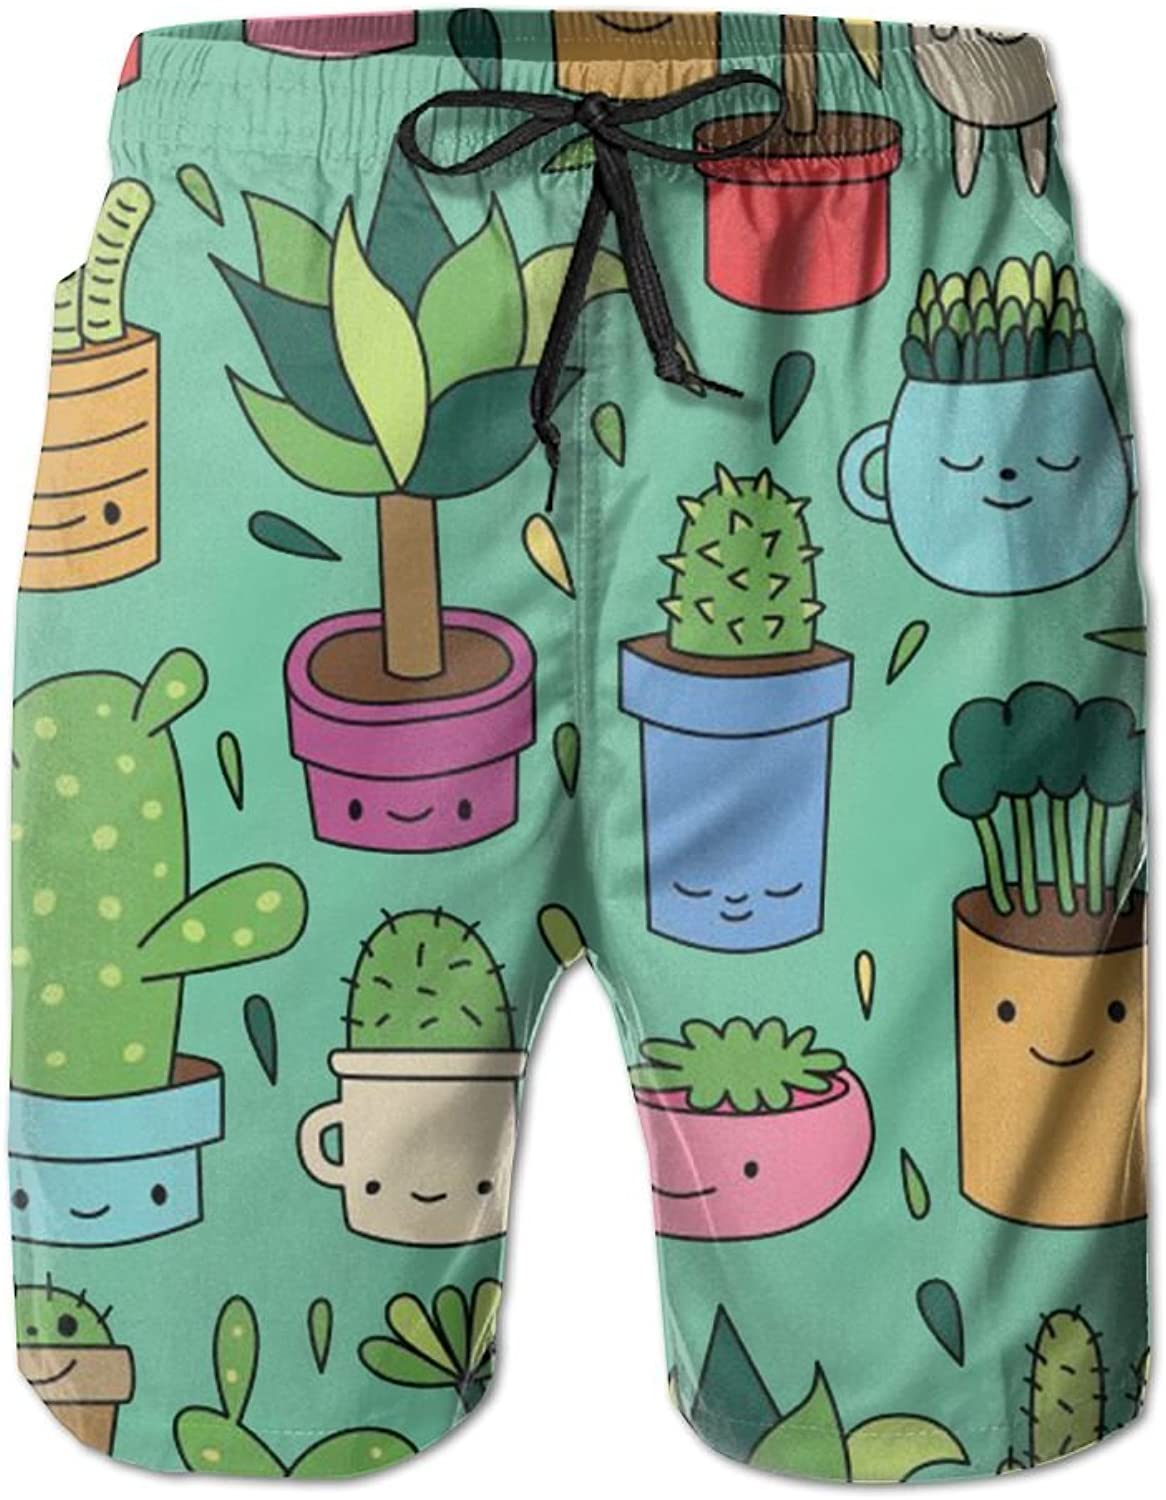 a9c21a6f15a Game Life Shorts Shorts Shorts Cactus Mens Tree Quick Dry Swim Trunks Beach  Shorts with Mesh Lining 6c07fa